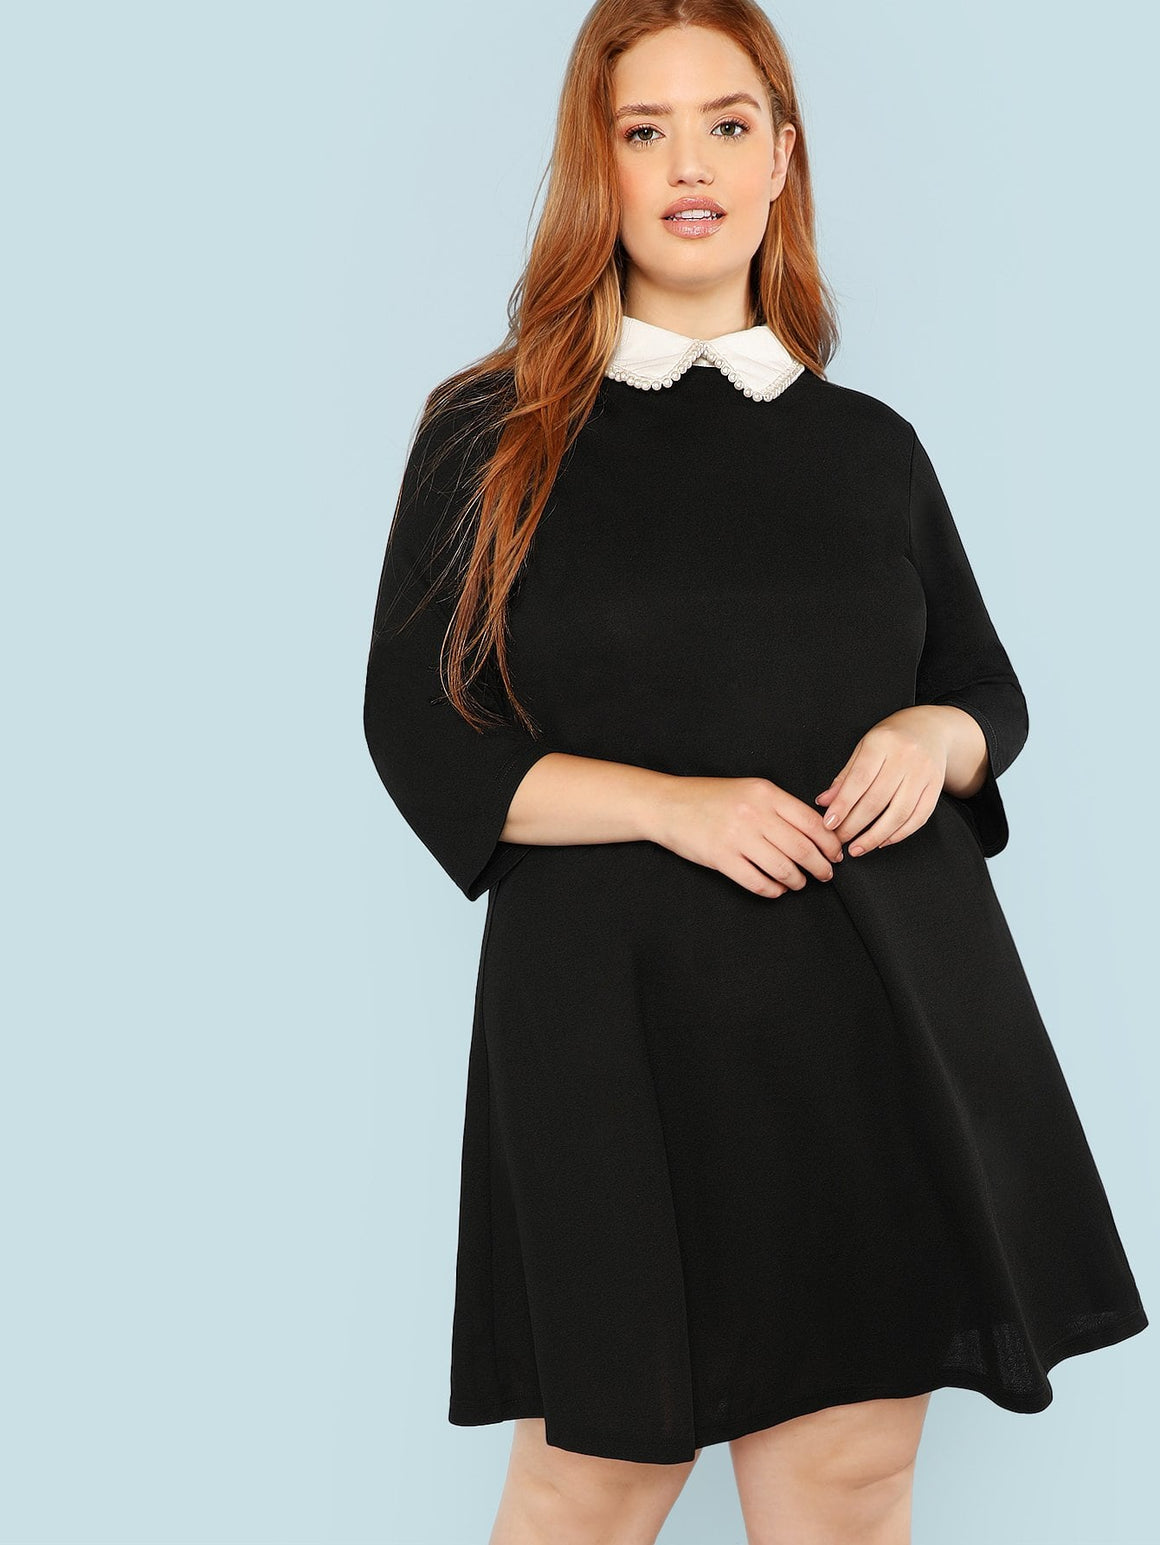 Pearl Embellished Collar Black Dress